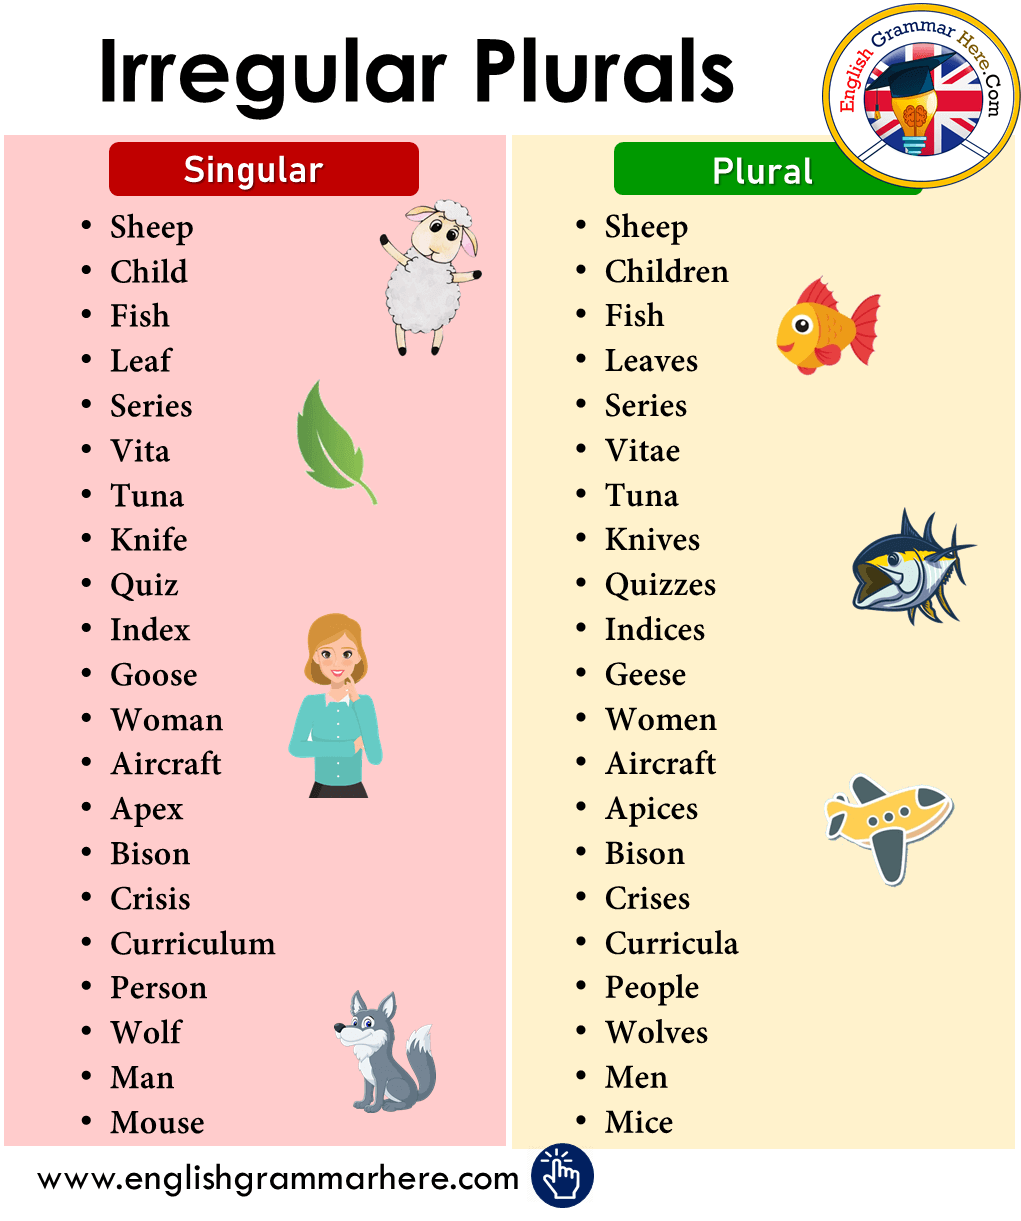 Detailed Irregular Plurals List in English